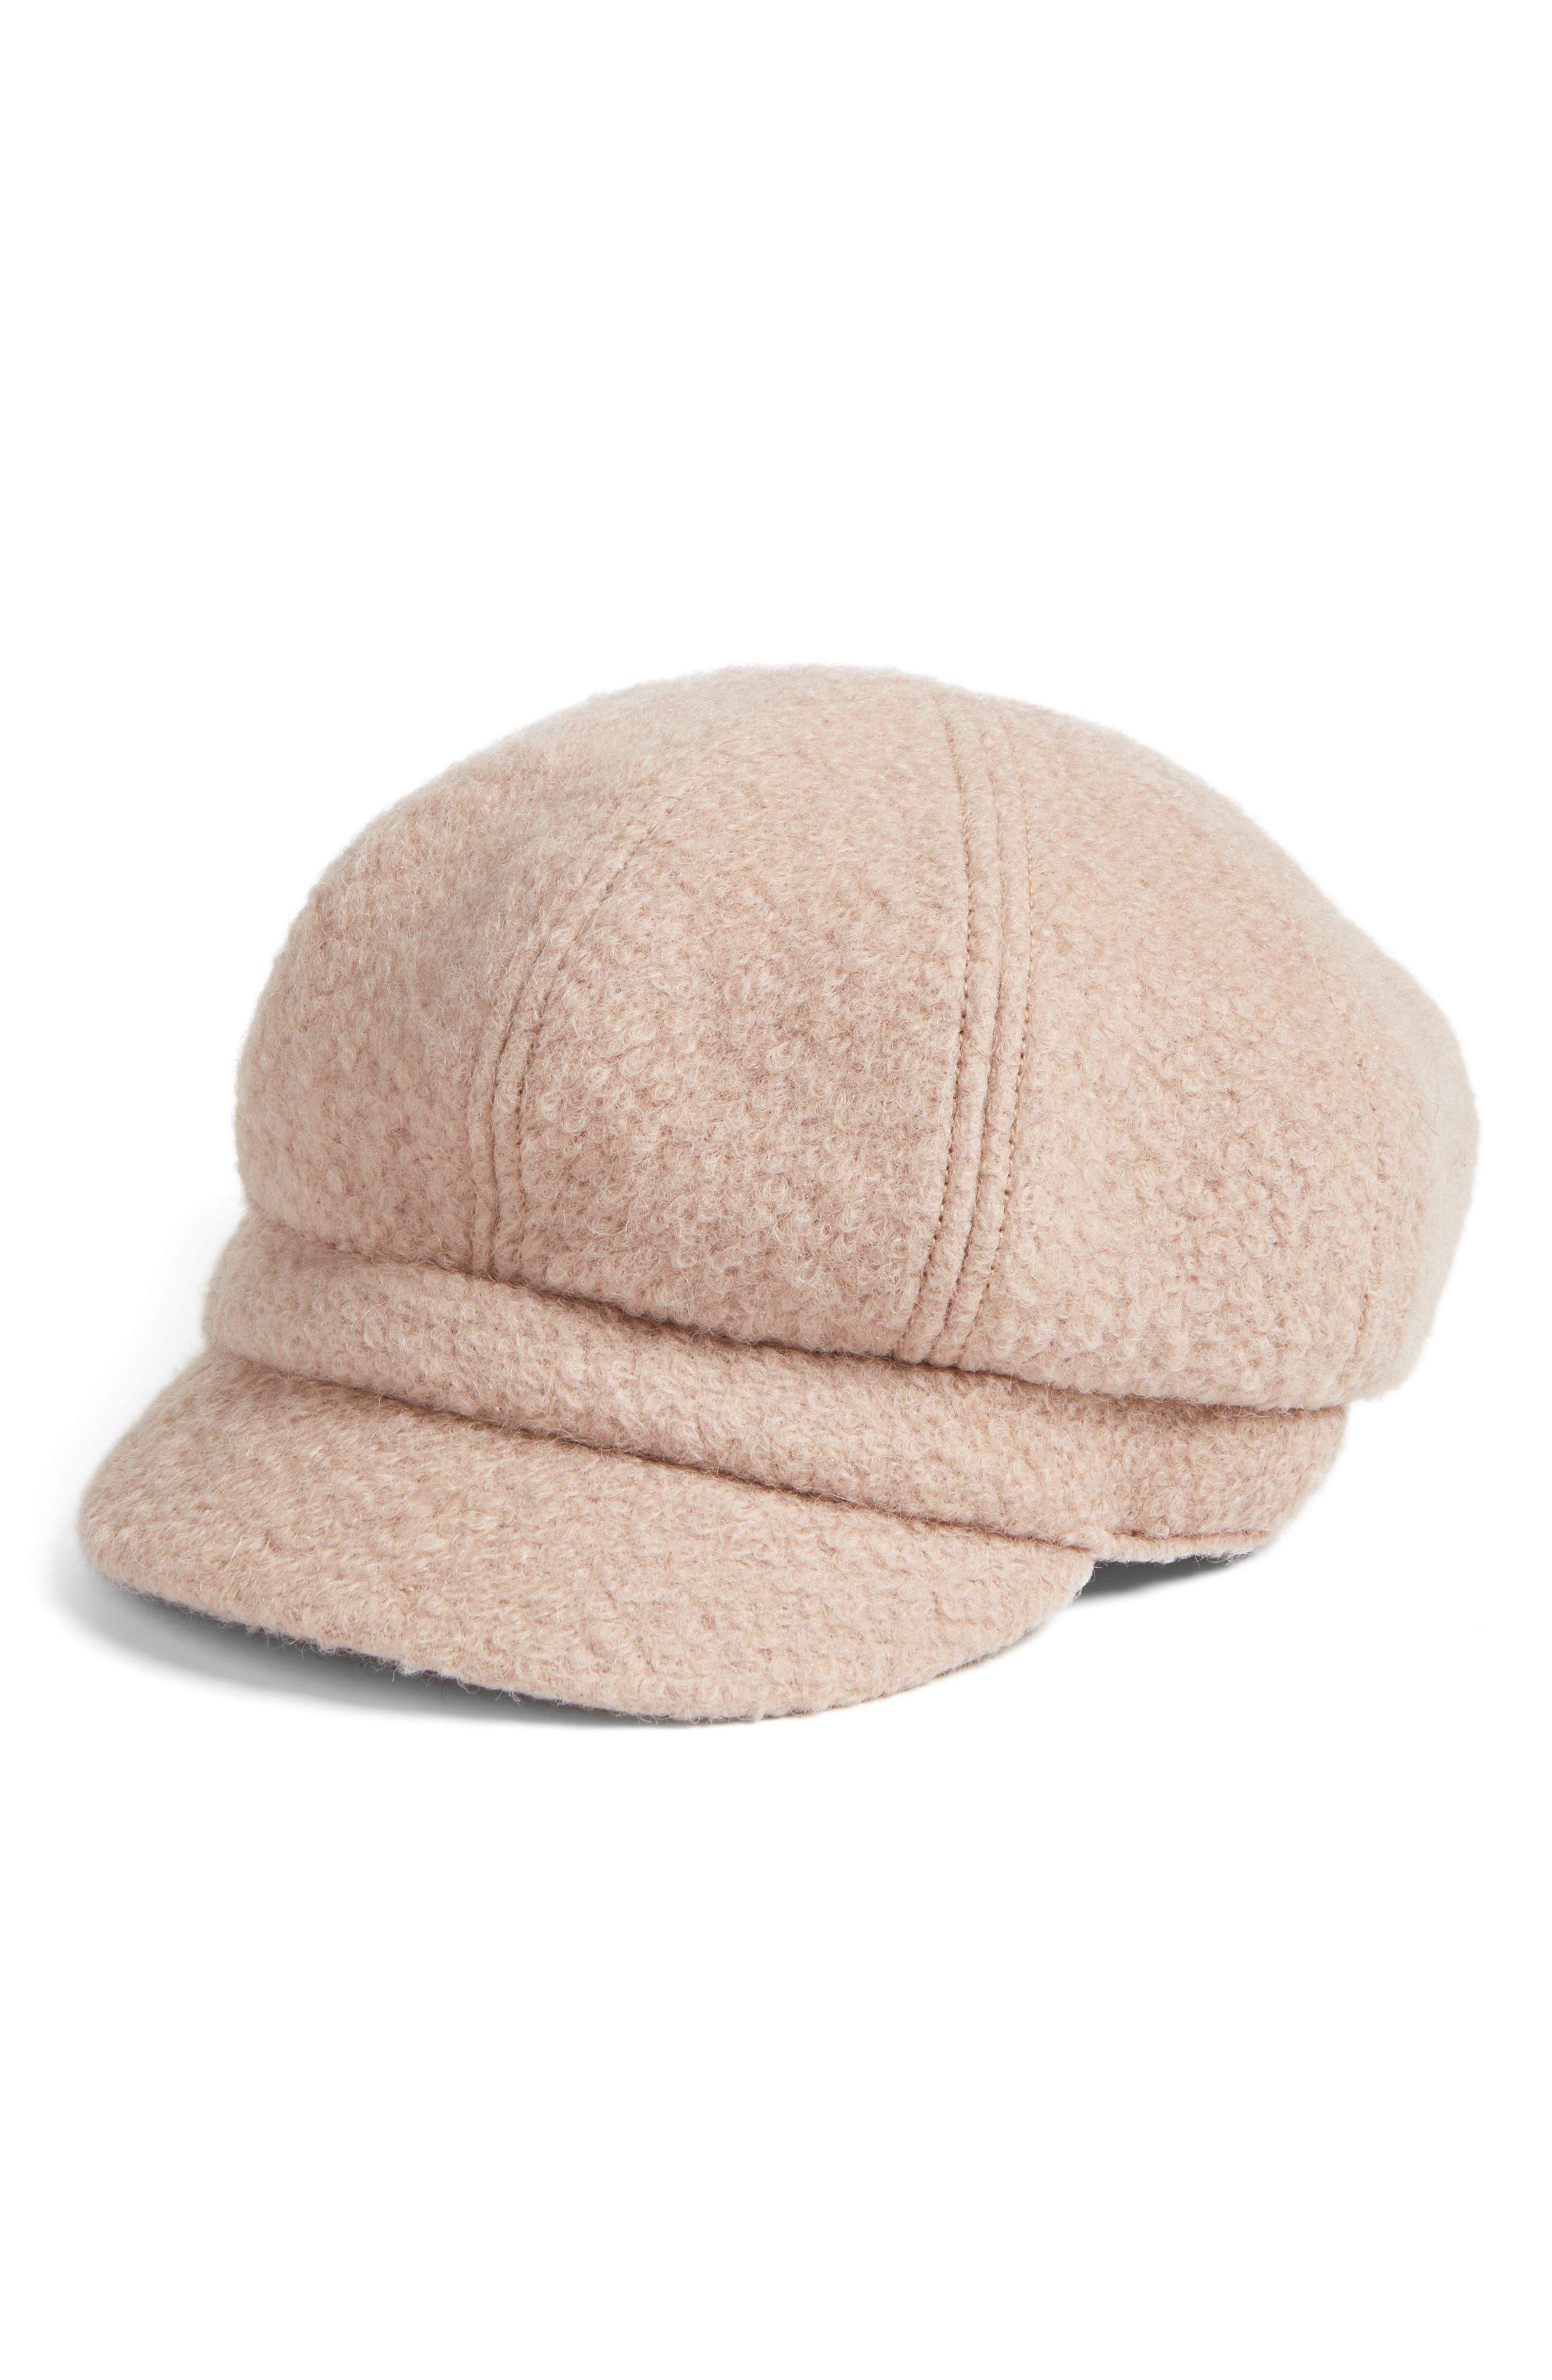 Alternate Image 1 Selected - August Hat Boys are Back Bouclé Newsboy Cap